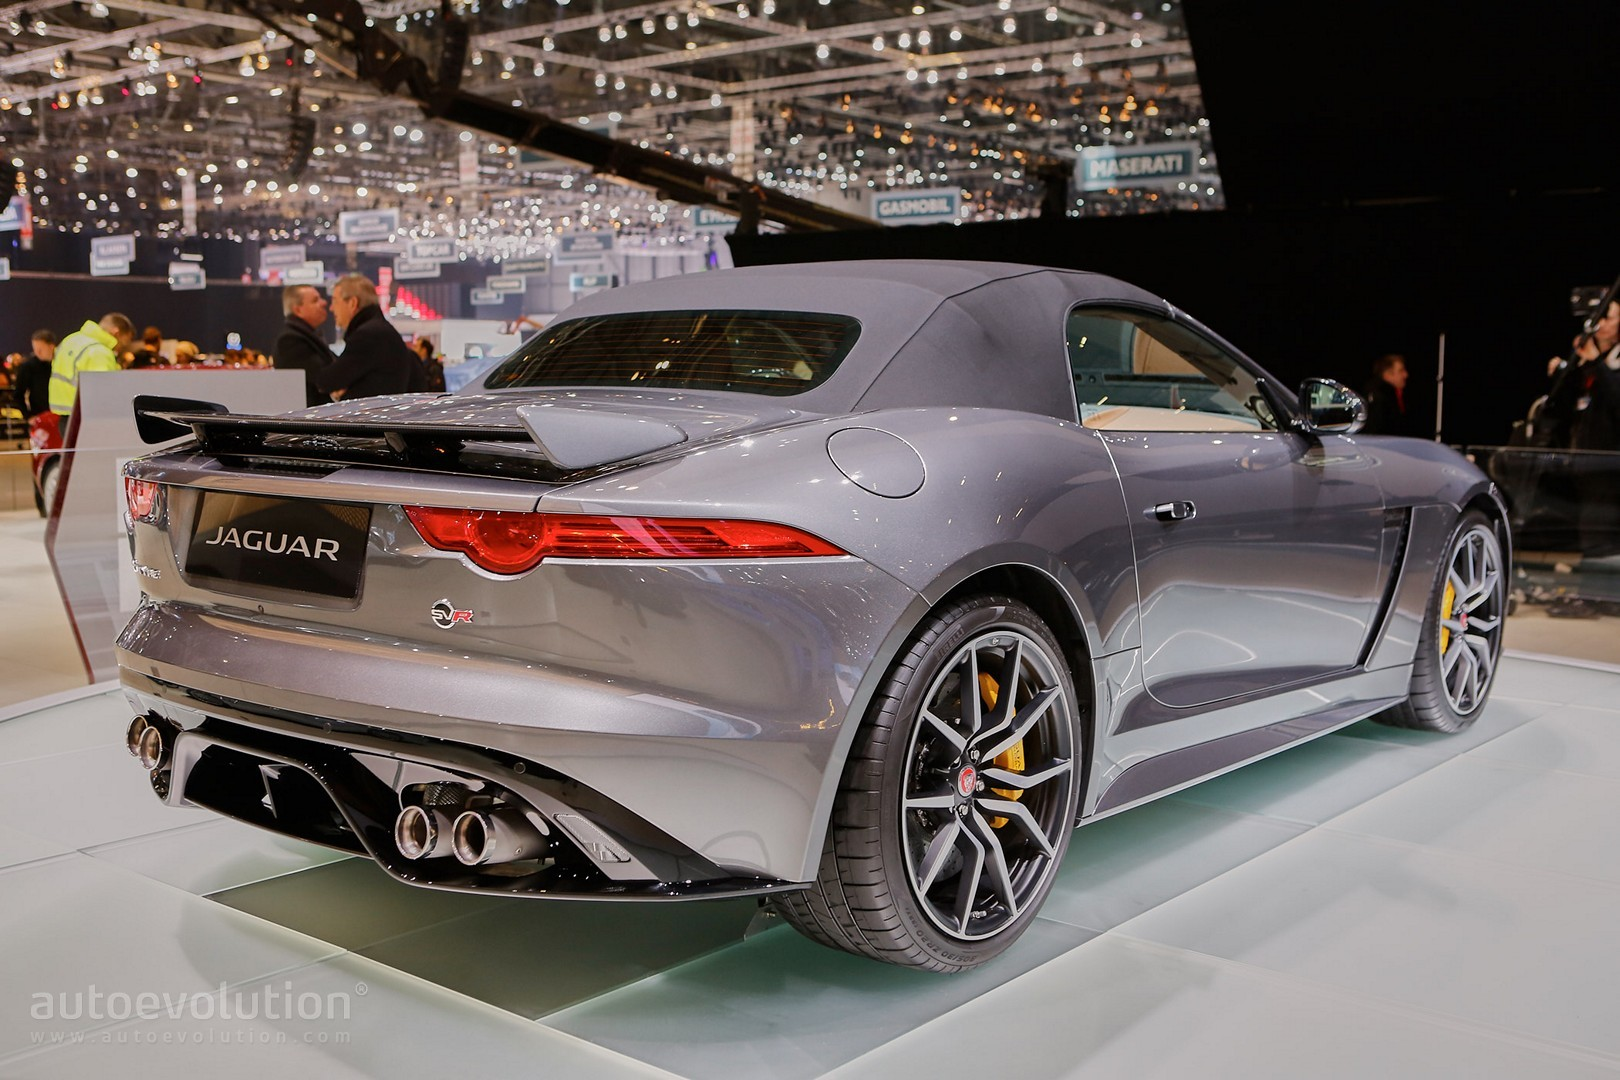 Jaguar Is Already Thinking About A New Generation Of Sports Car That Will Take Advantage The Recent Hybrid Systems